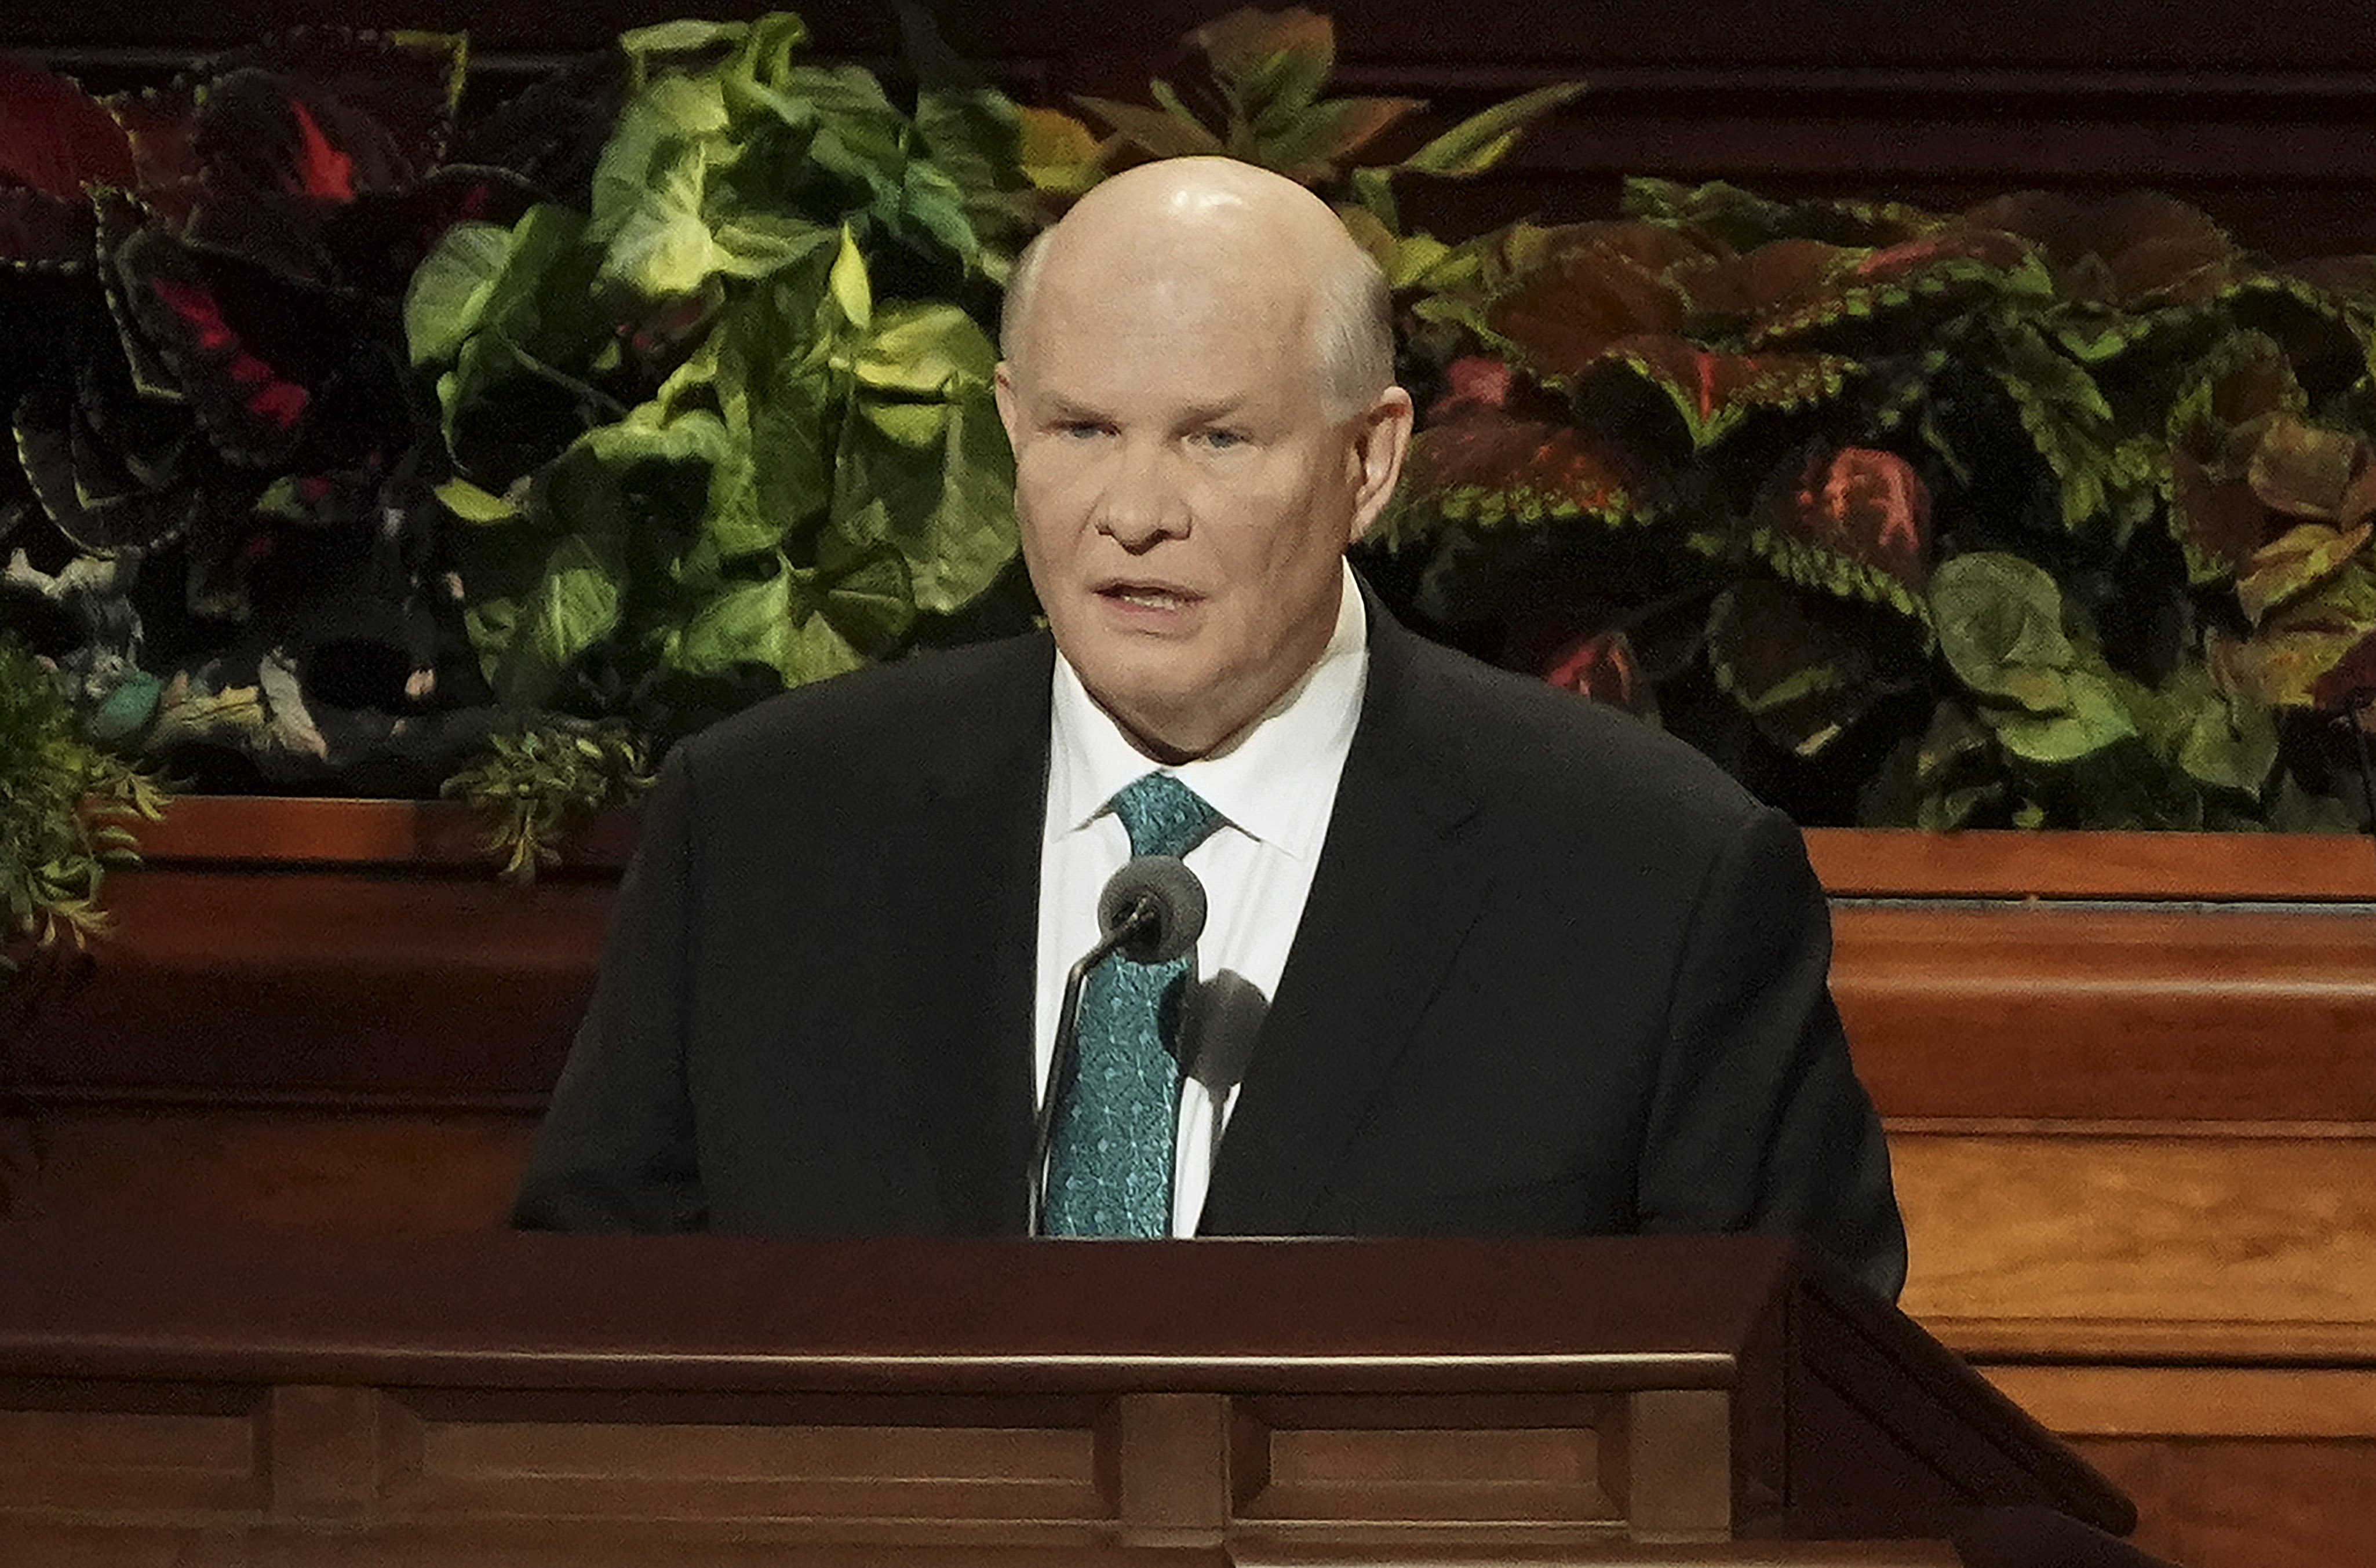 Elder Dale G. Renlund of The Church of Jesus Christ of Latter-day Saints' Quorum of the Twelve Apostles speaks during the Saturday morning session of the 189th Semiannual General Conference of The Church of Jesus Christ of Latter-day Saints in the Conference Center in Salt Lake City on Saturday, Oct. 5, 2019.